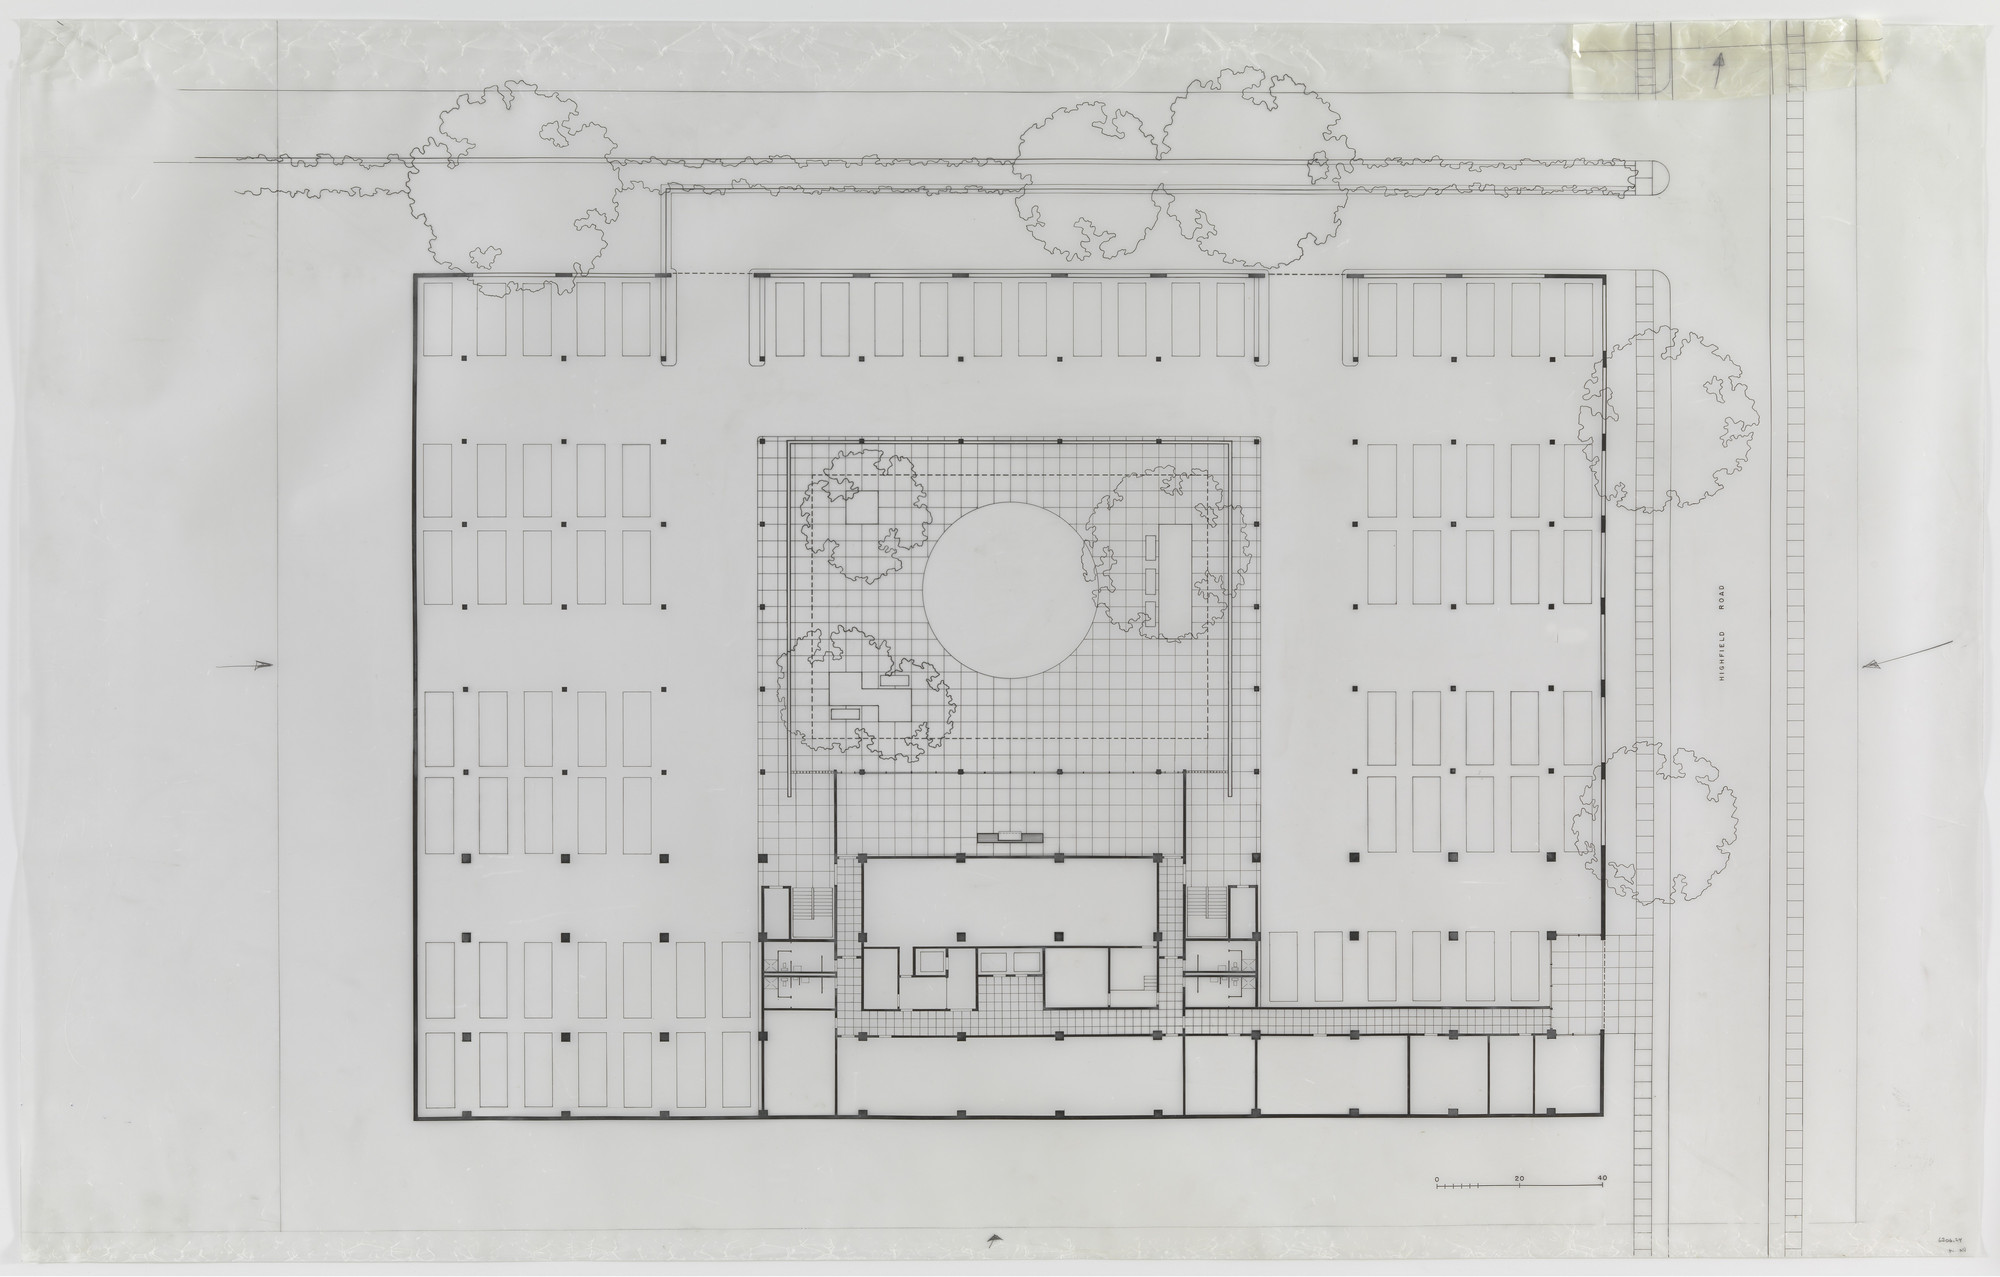 Ludwig Mies van der Rohe. Highfield House Apartments, Baltimore, MD, Basement parking plan. c.1962